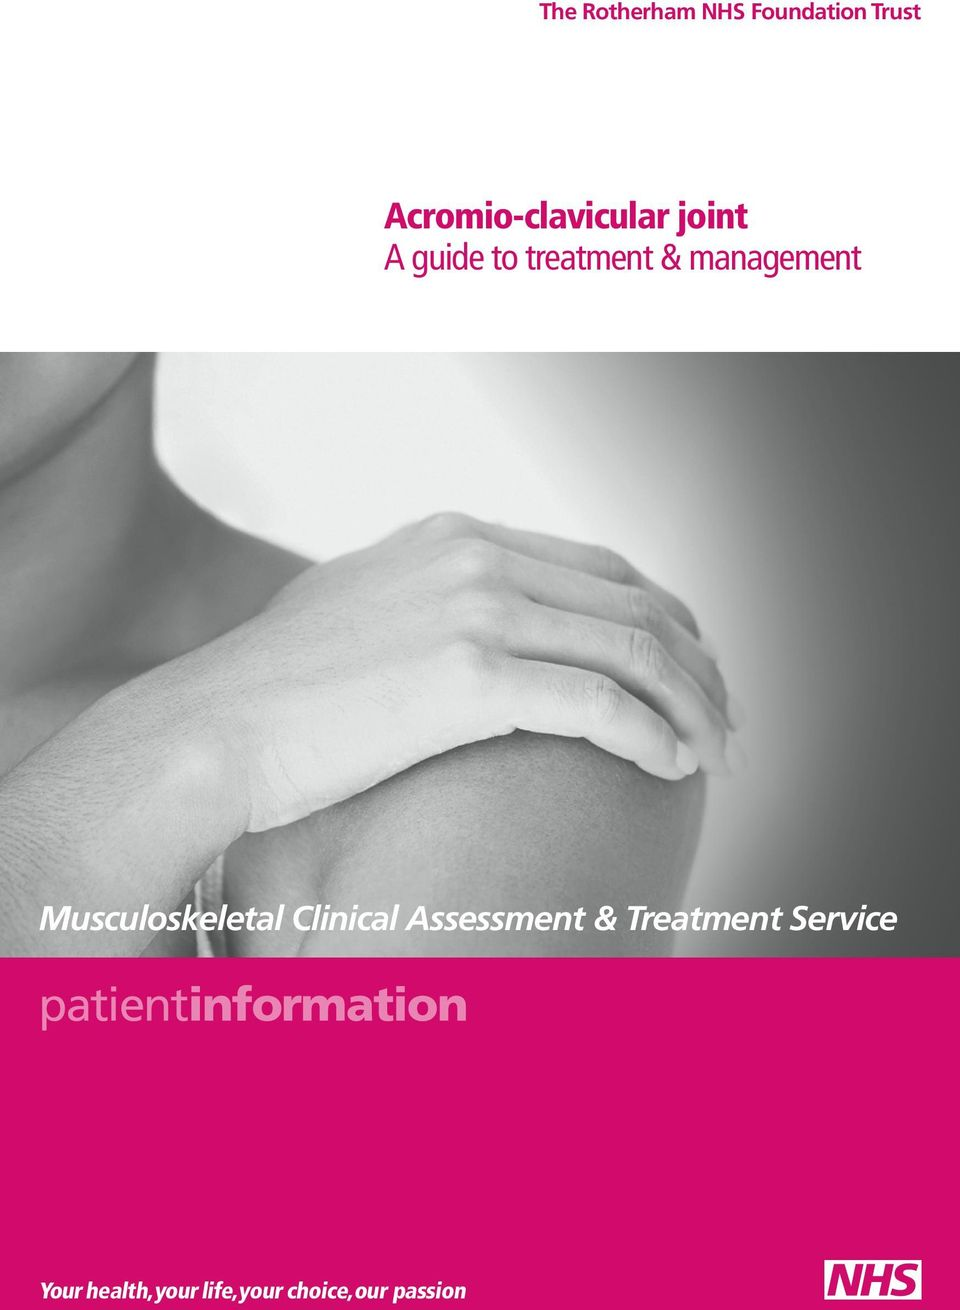 Clinical Assessment & Treatment Service